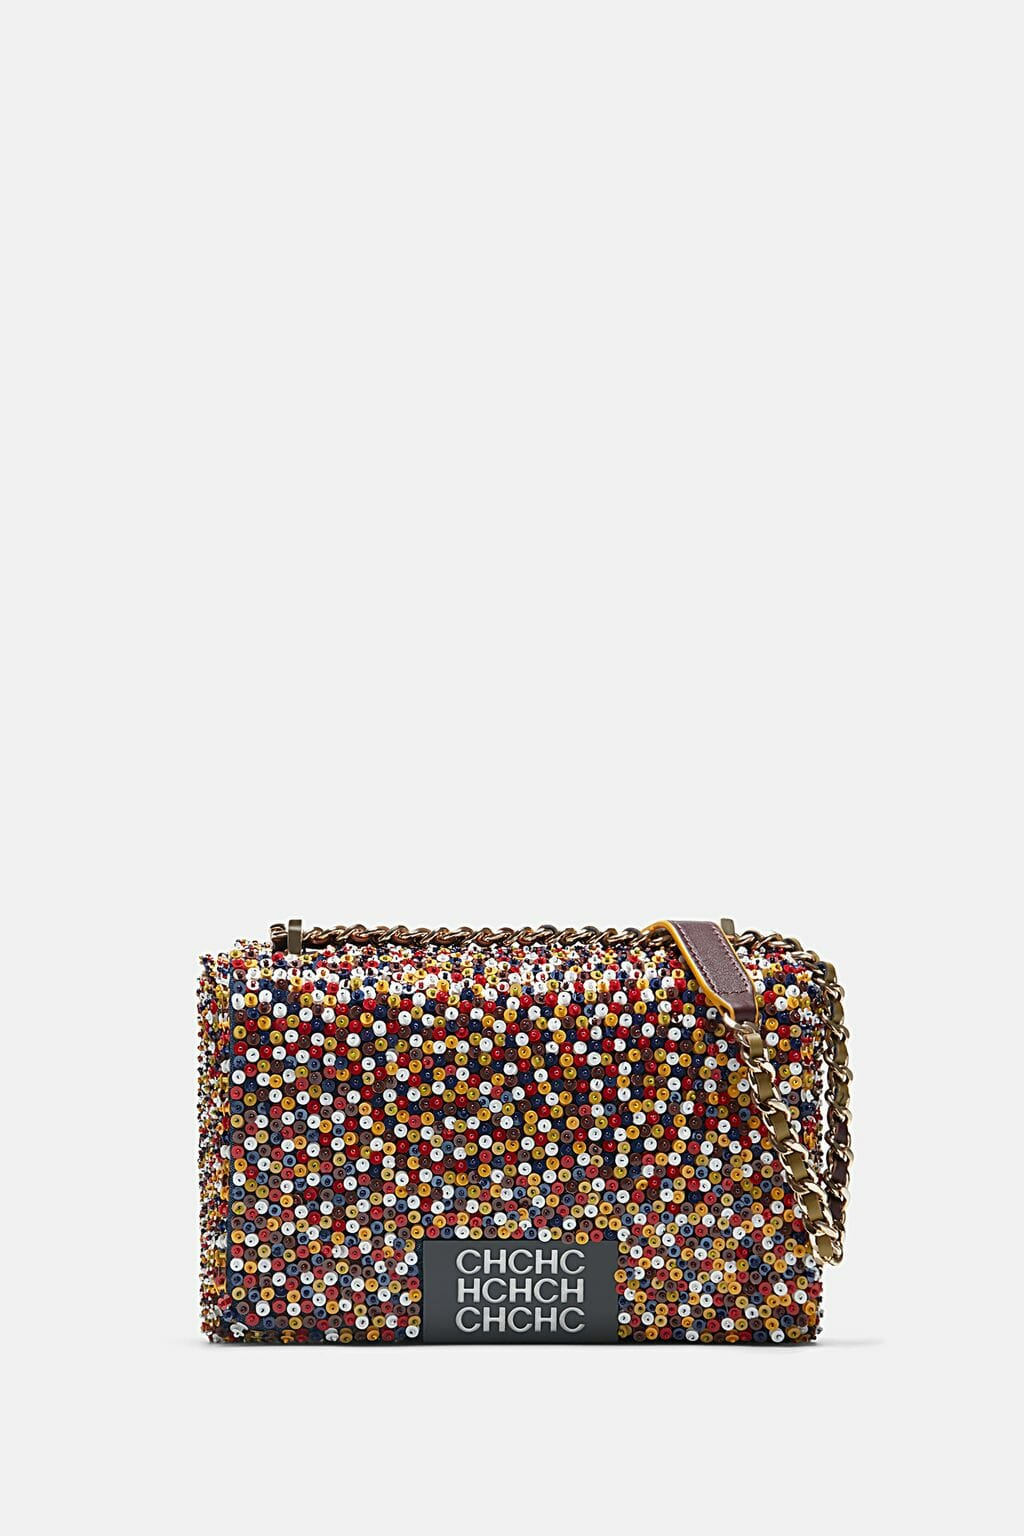 CH-Carolina-herrera-bags-collection-must-have-look-17